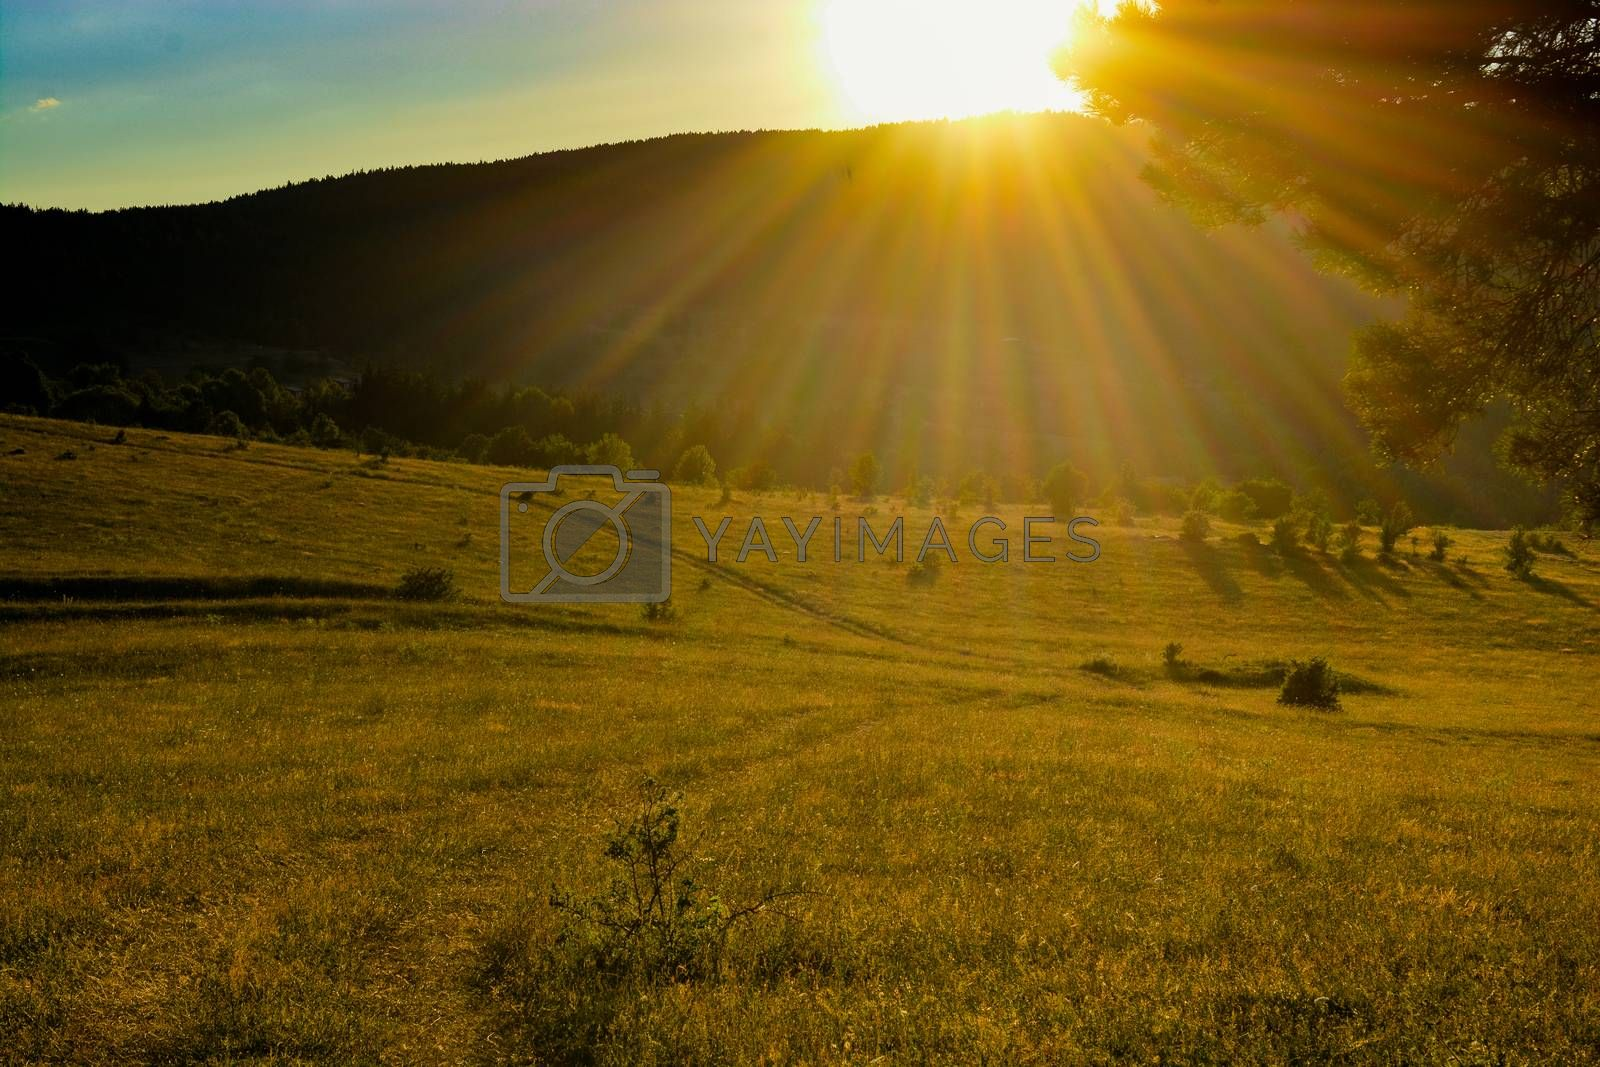 Sunset in countryside landscape in countryside by berkay